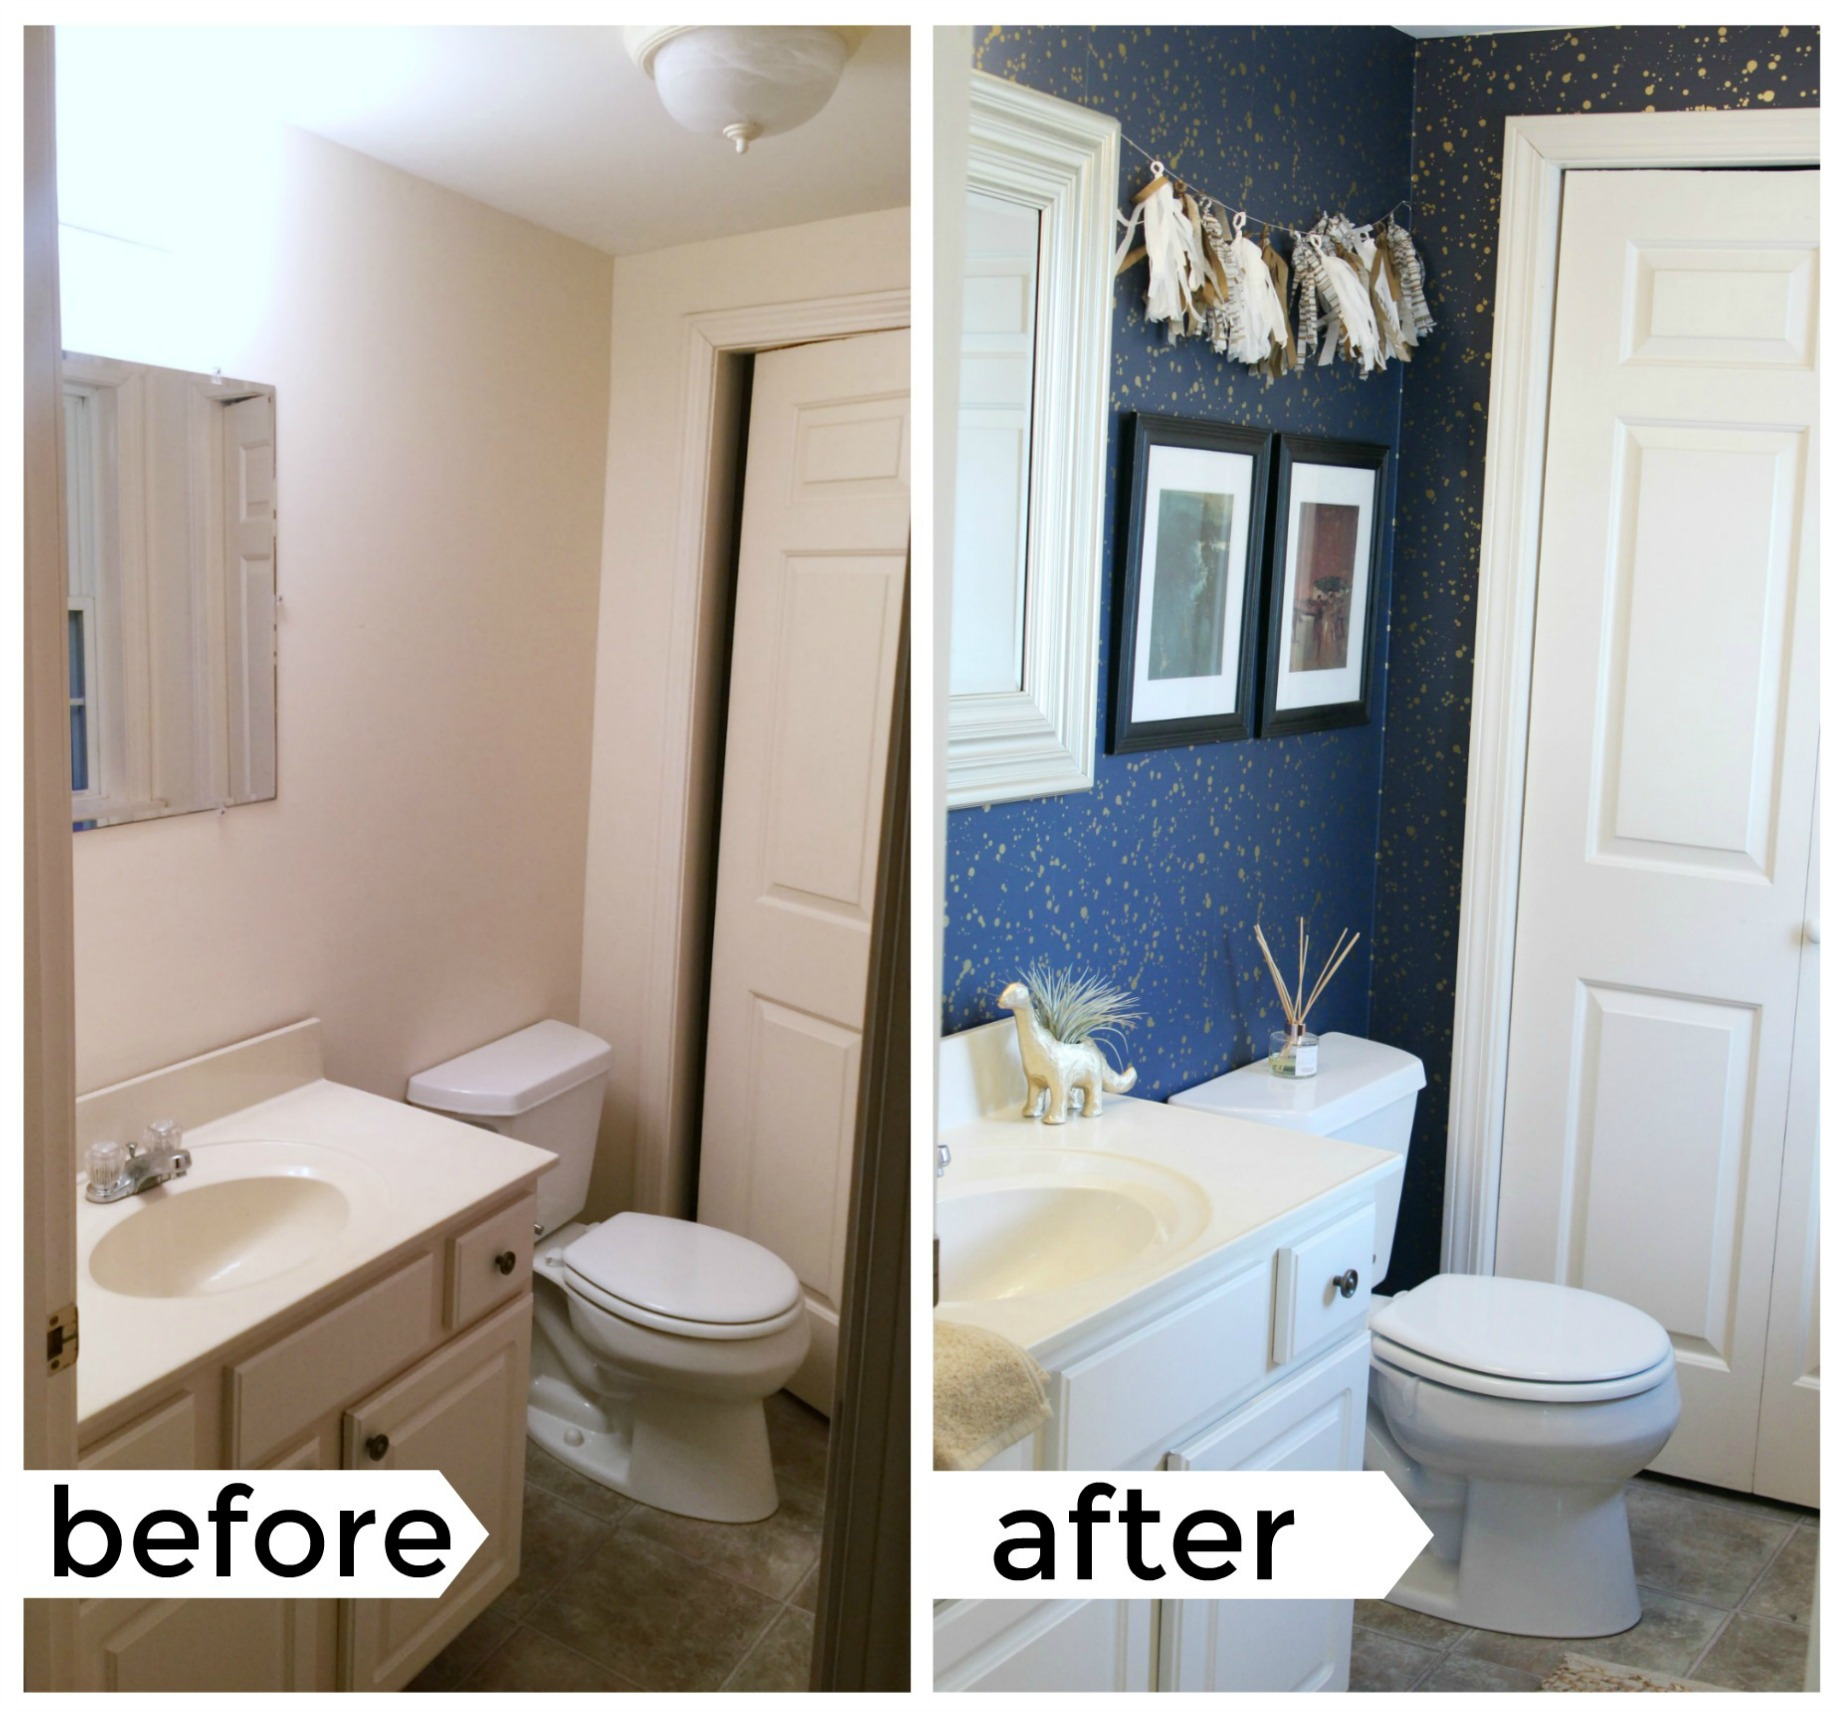 Apartment Bathroom Makeover: How To Decorate Your Rental Space? Bathroom Rental Decor